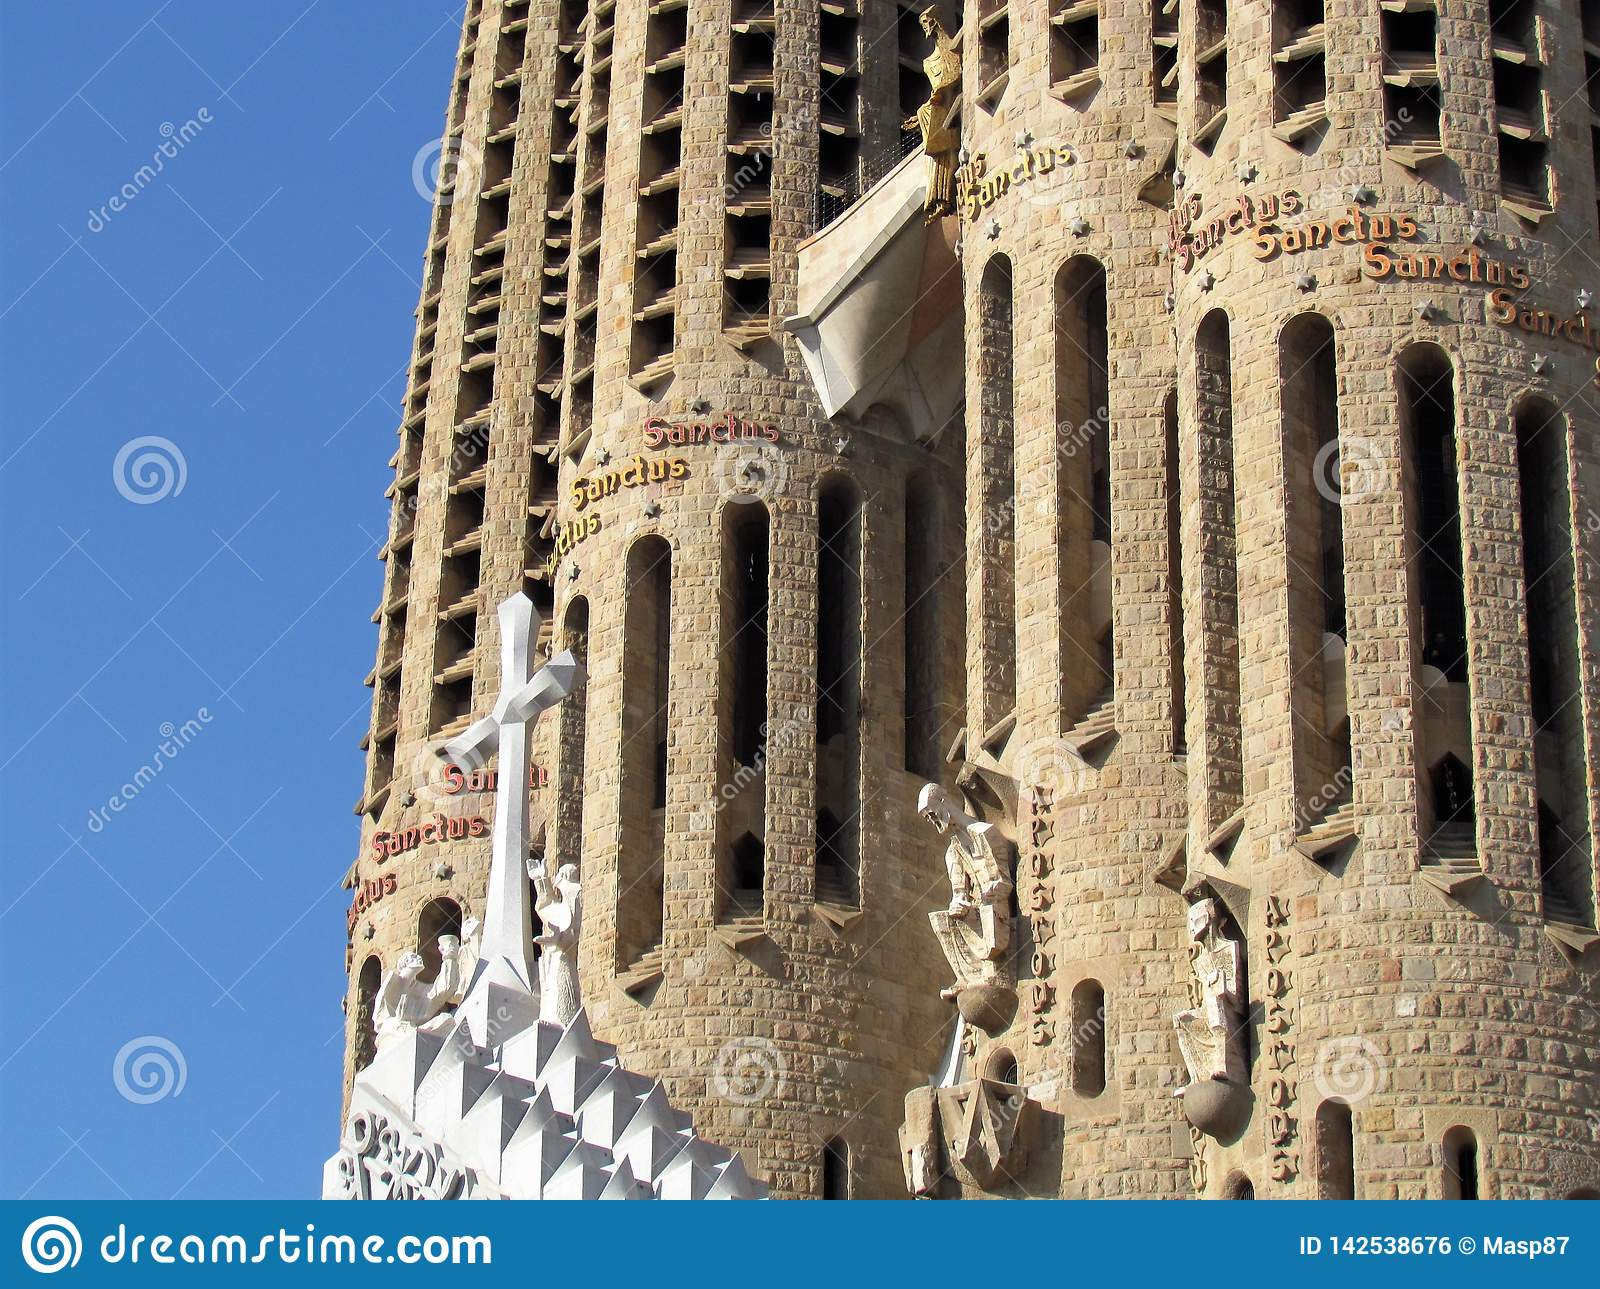 Details of Sagrada Familia, the cathedral of Barcelona, the Masterpiece designed by Antony Gaudi